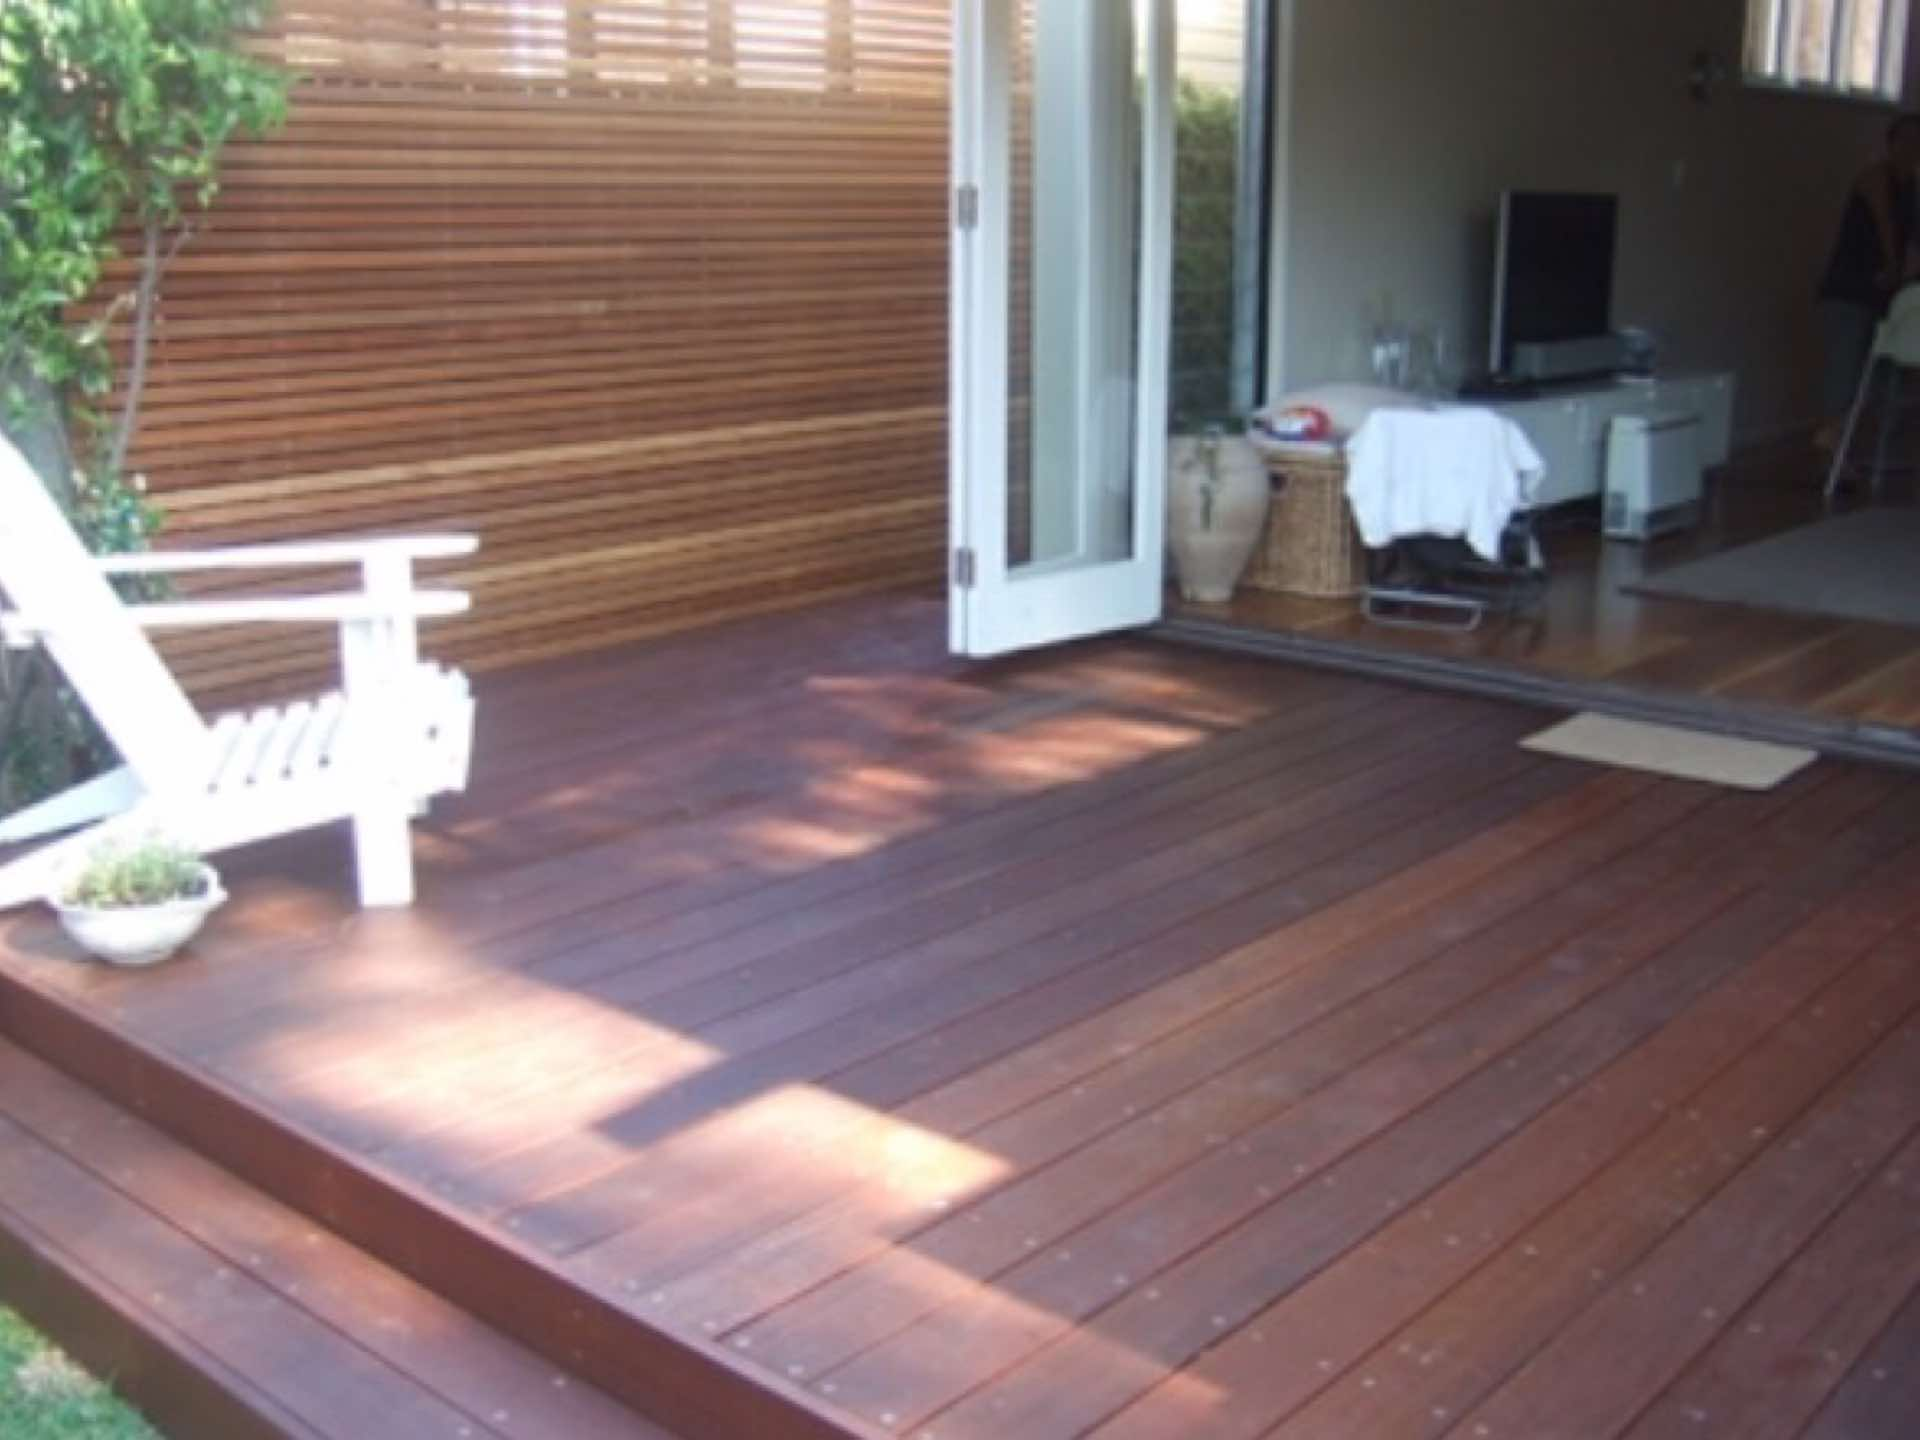 Belian decking and privacy screen Manly, NSW